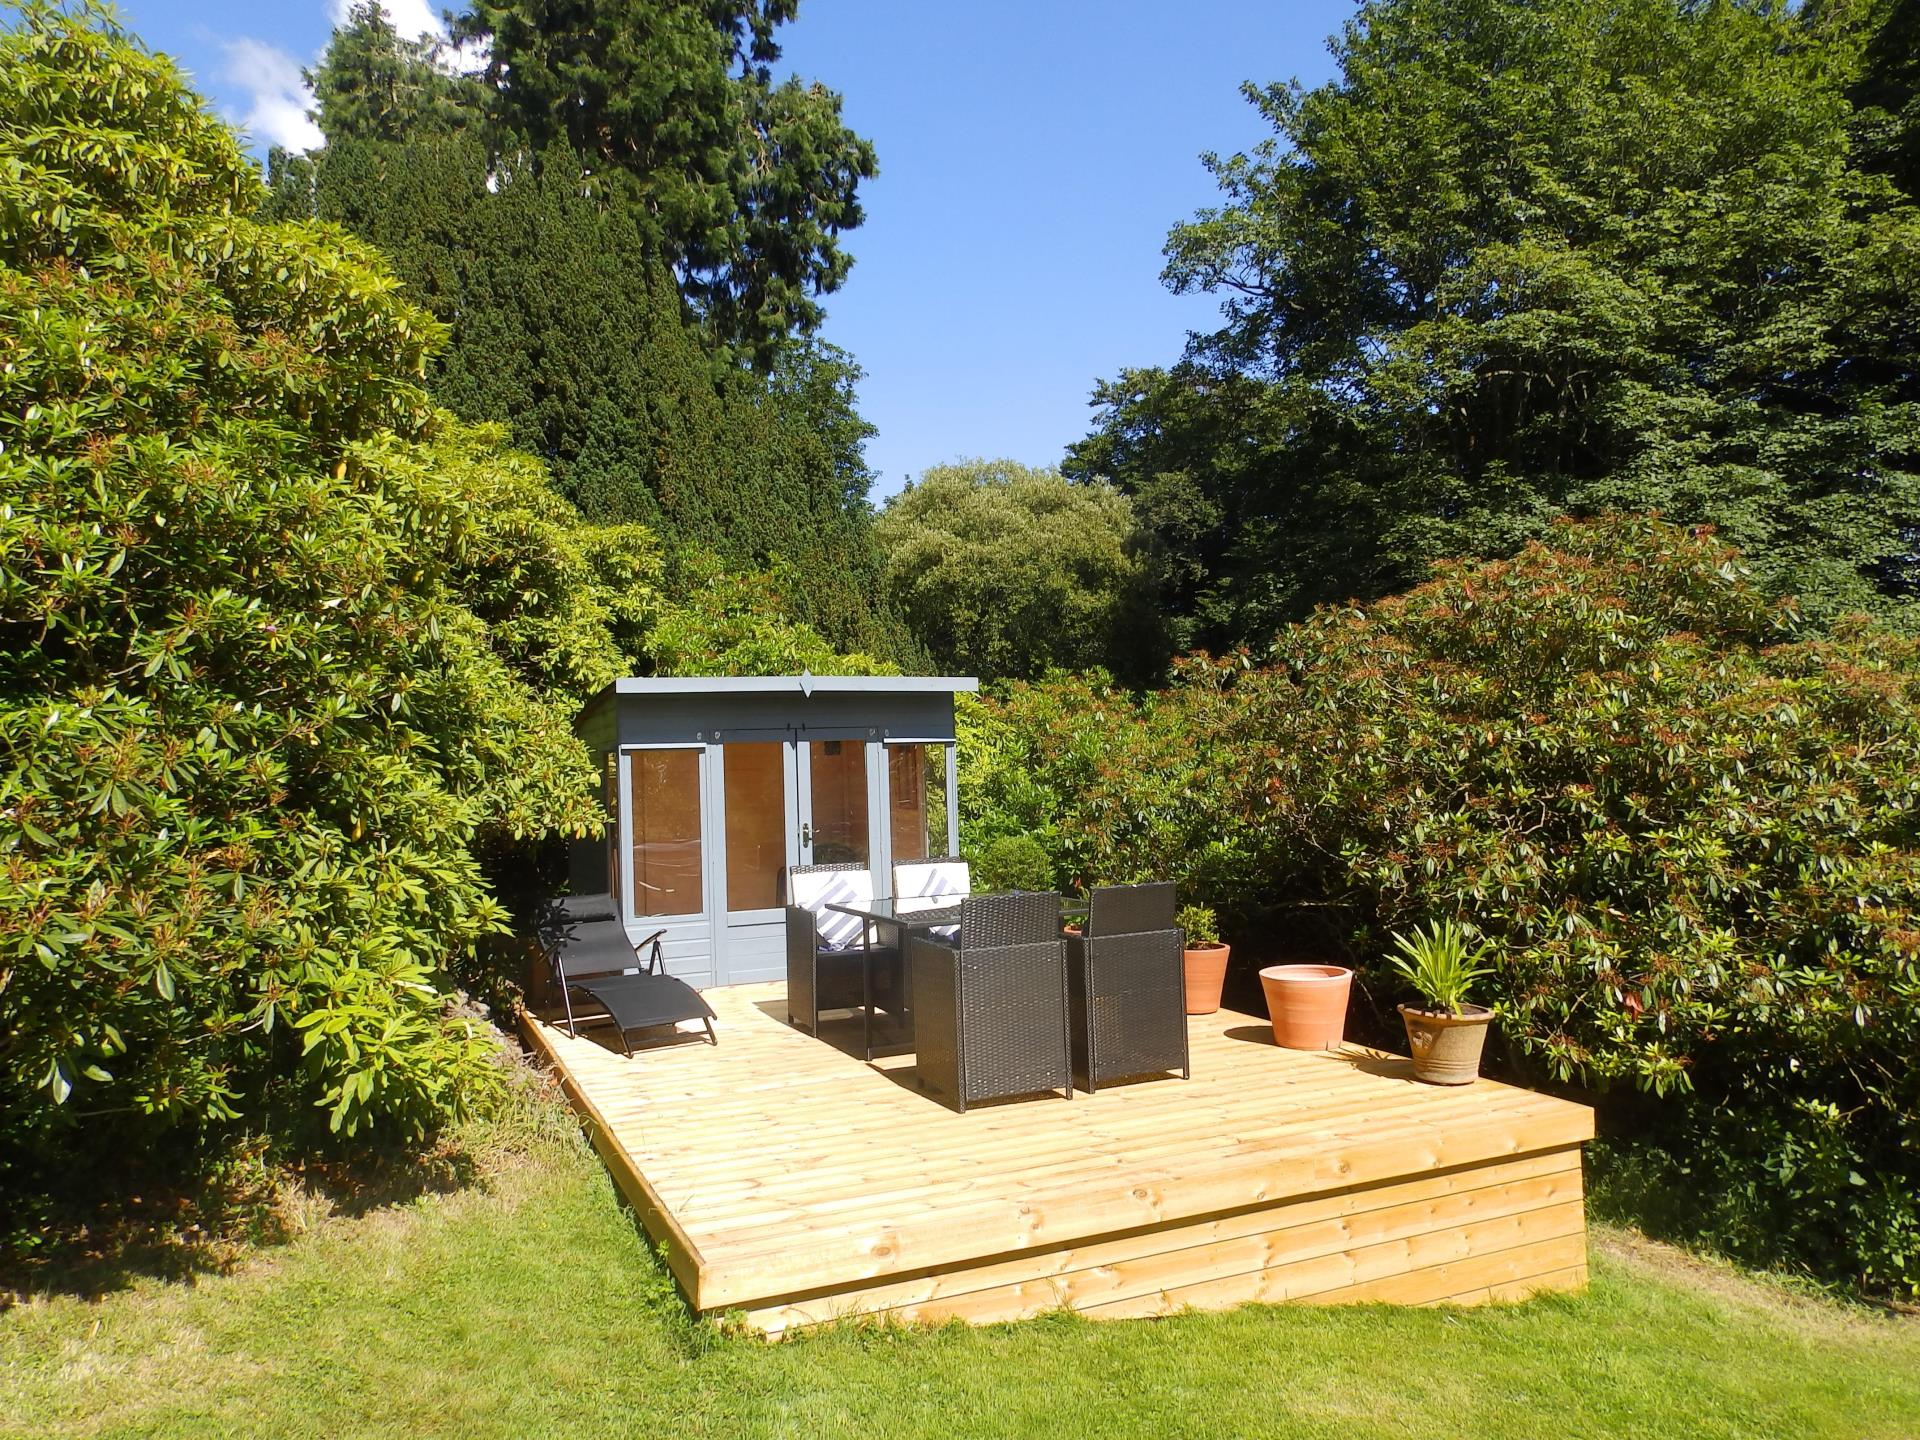 Summer house and decking with gas BBQ